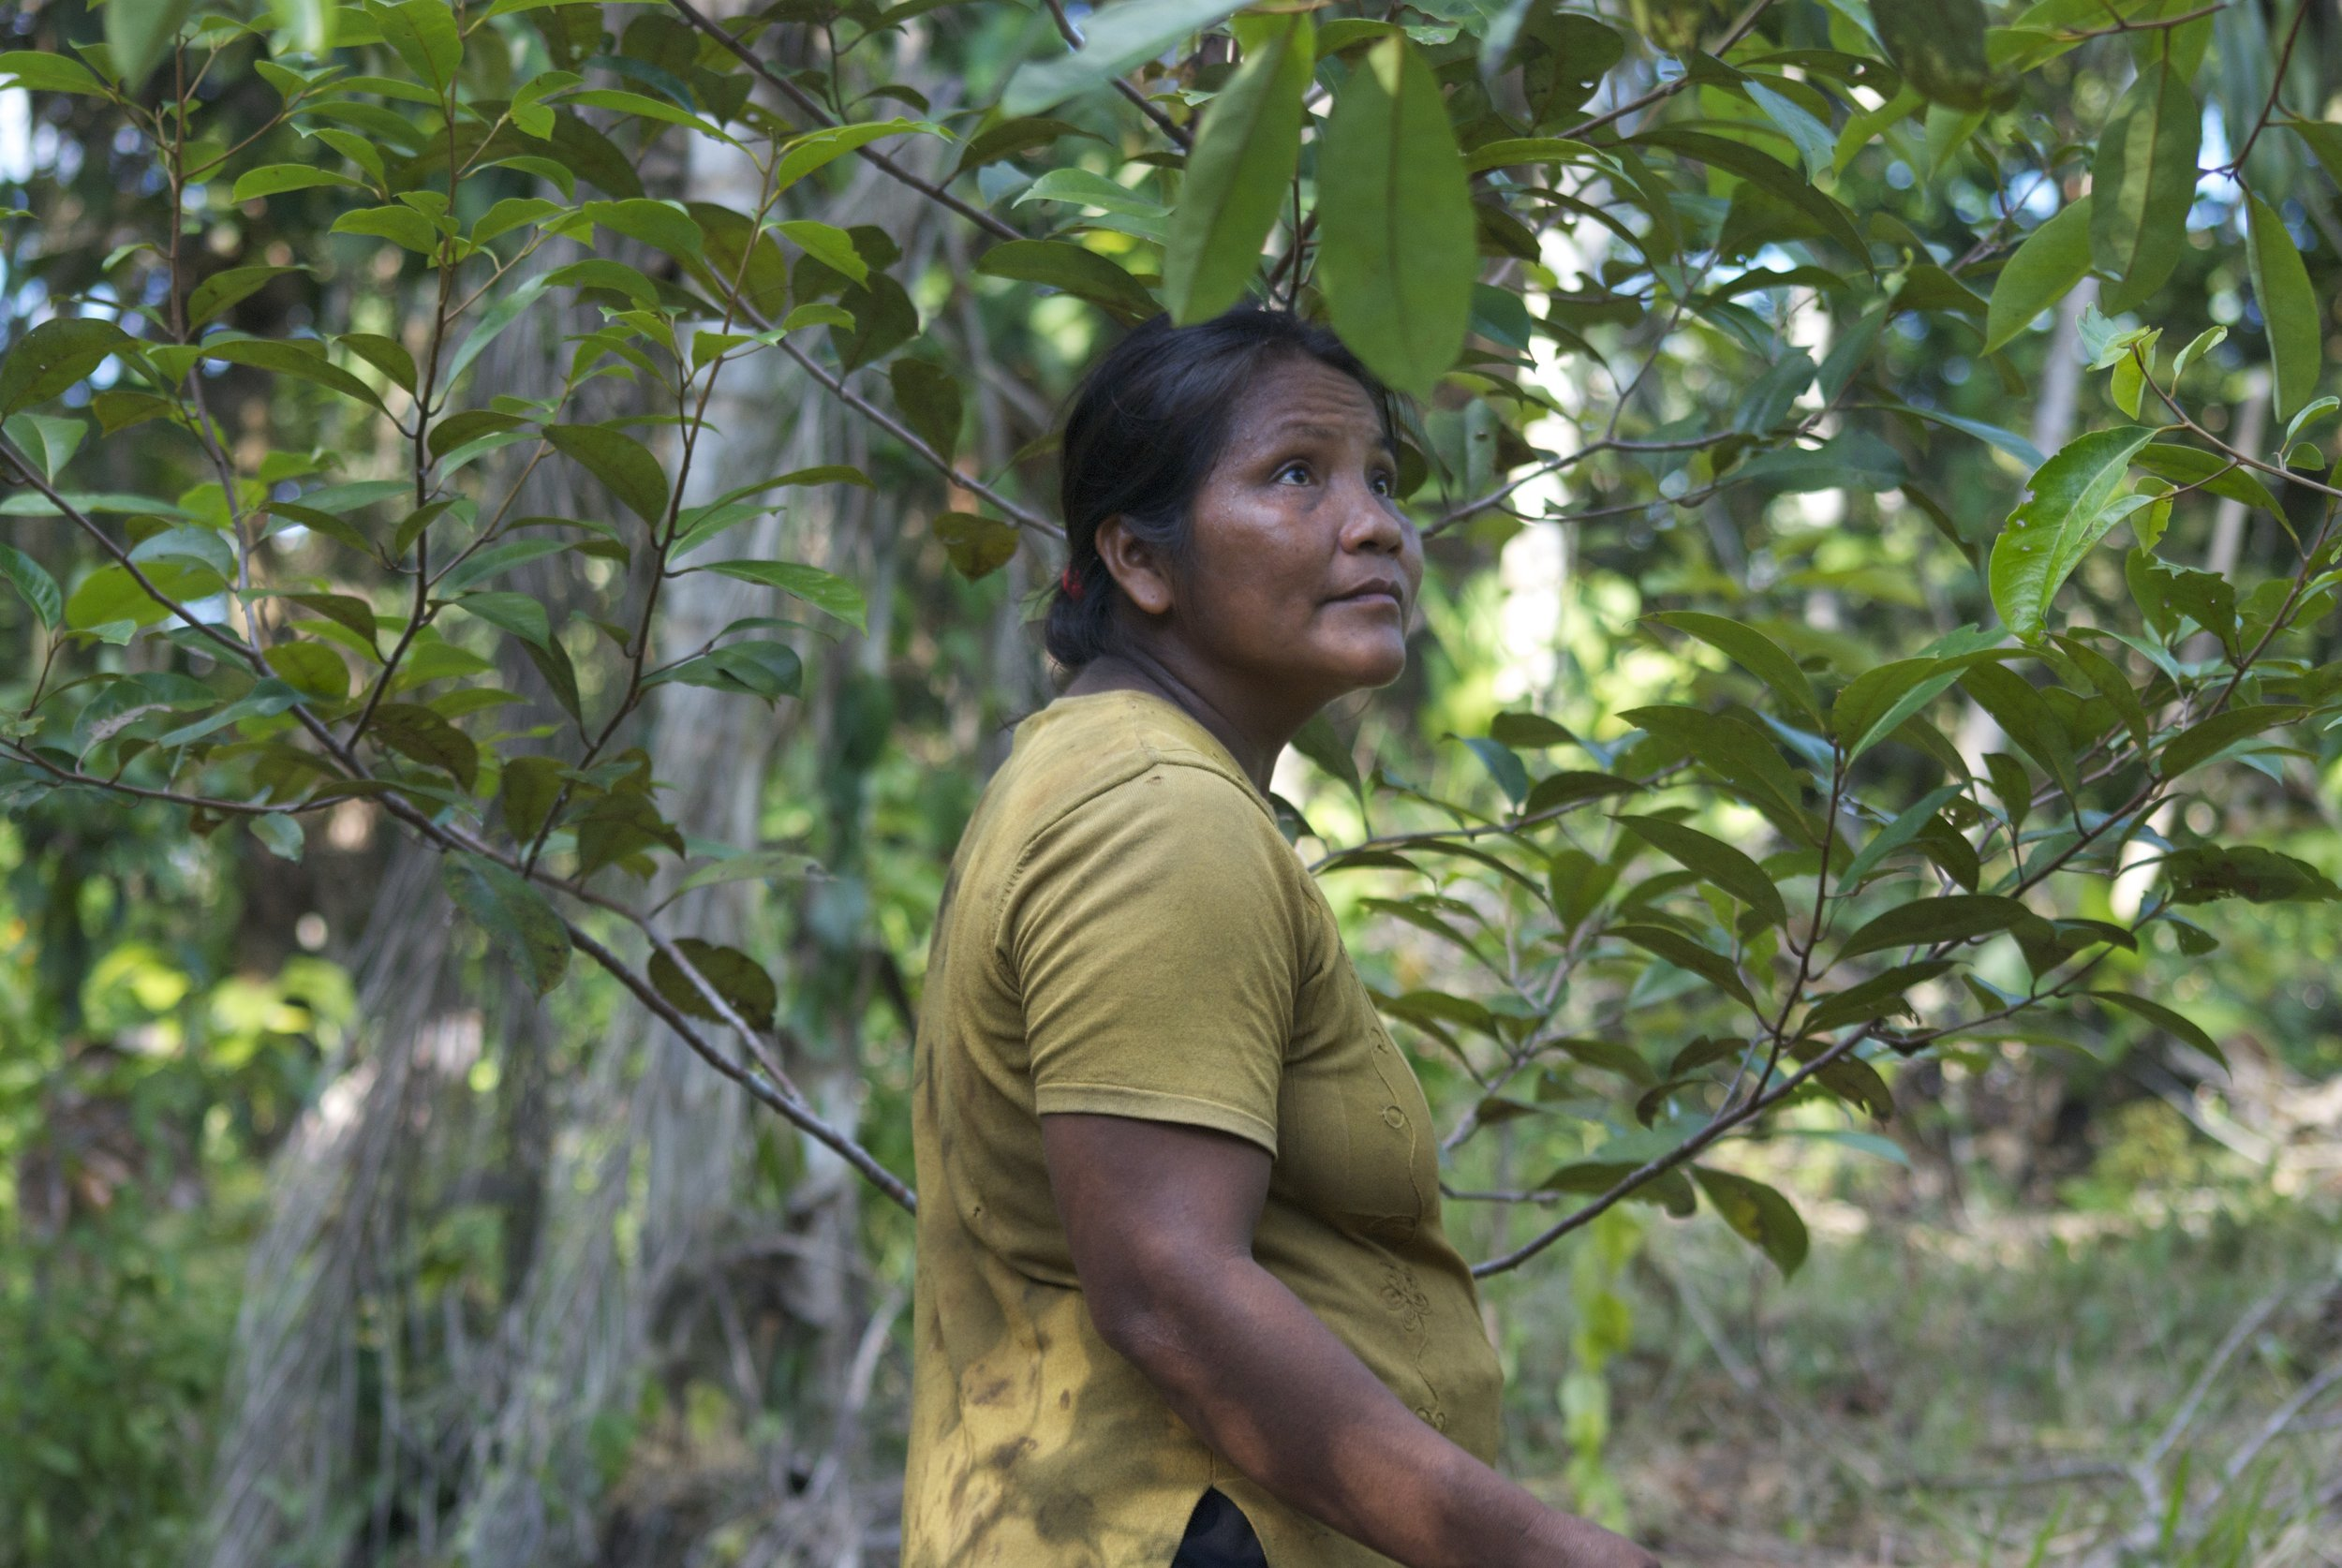 A Bora farmer in Ampiyacu with a 5-year old rosewood tree.